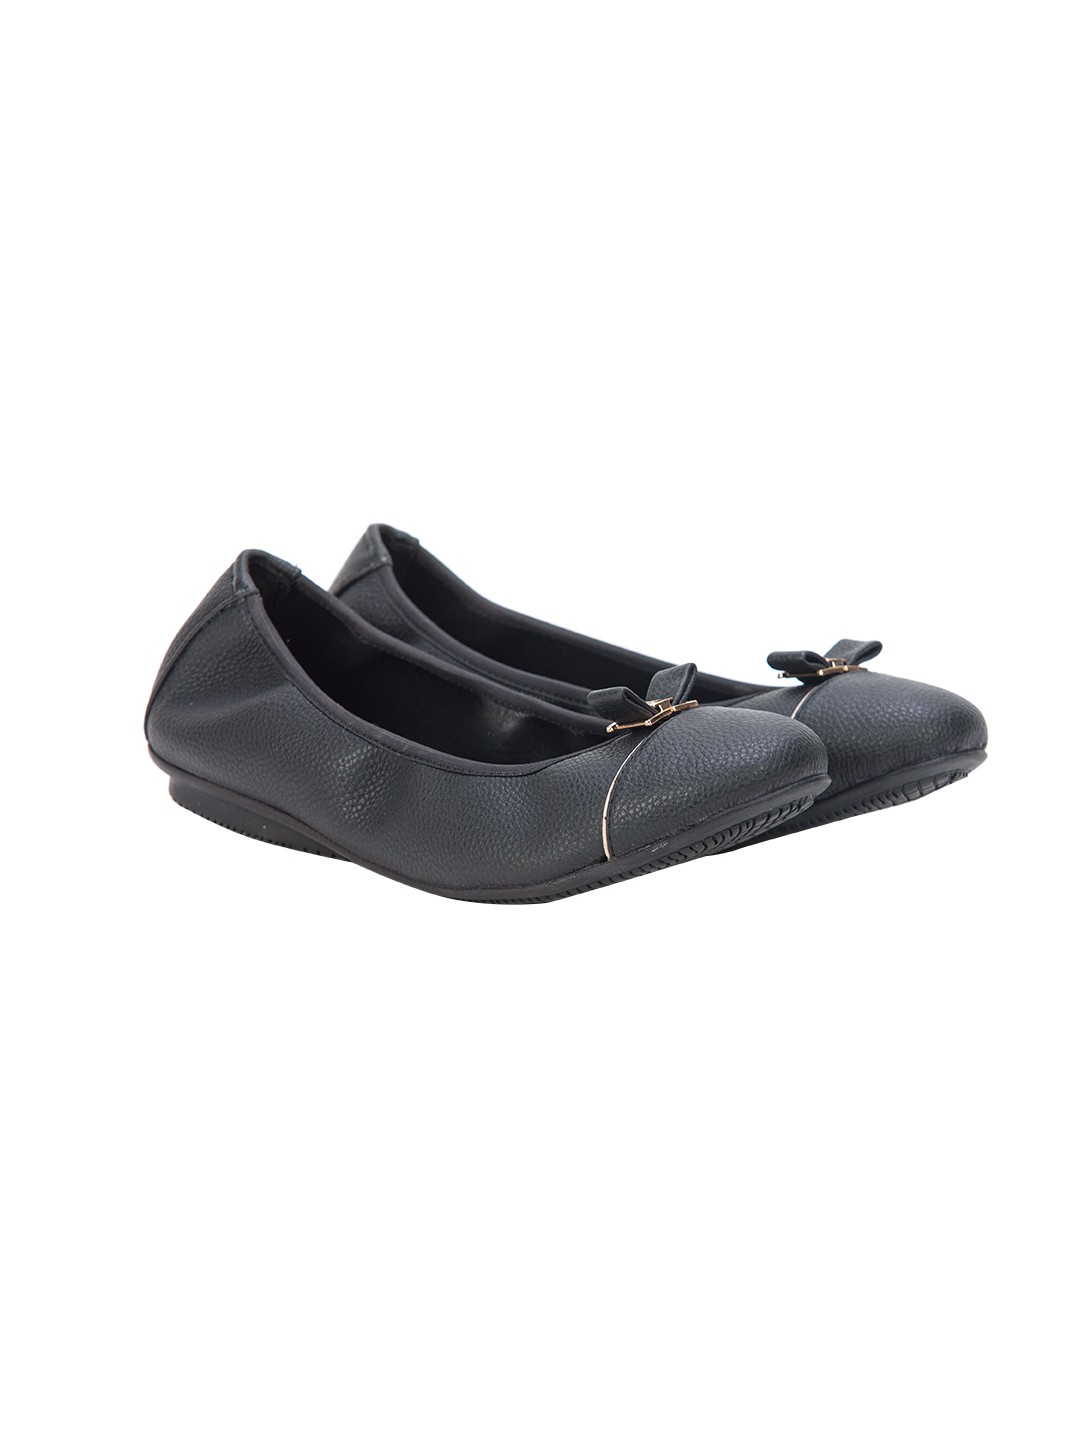 Buy Von Wellx Germany Comfort Poise Casual Black Shoes Online in Rajasthan